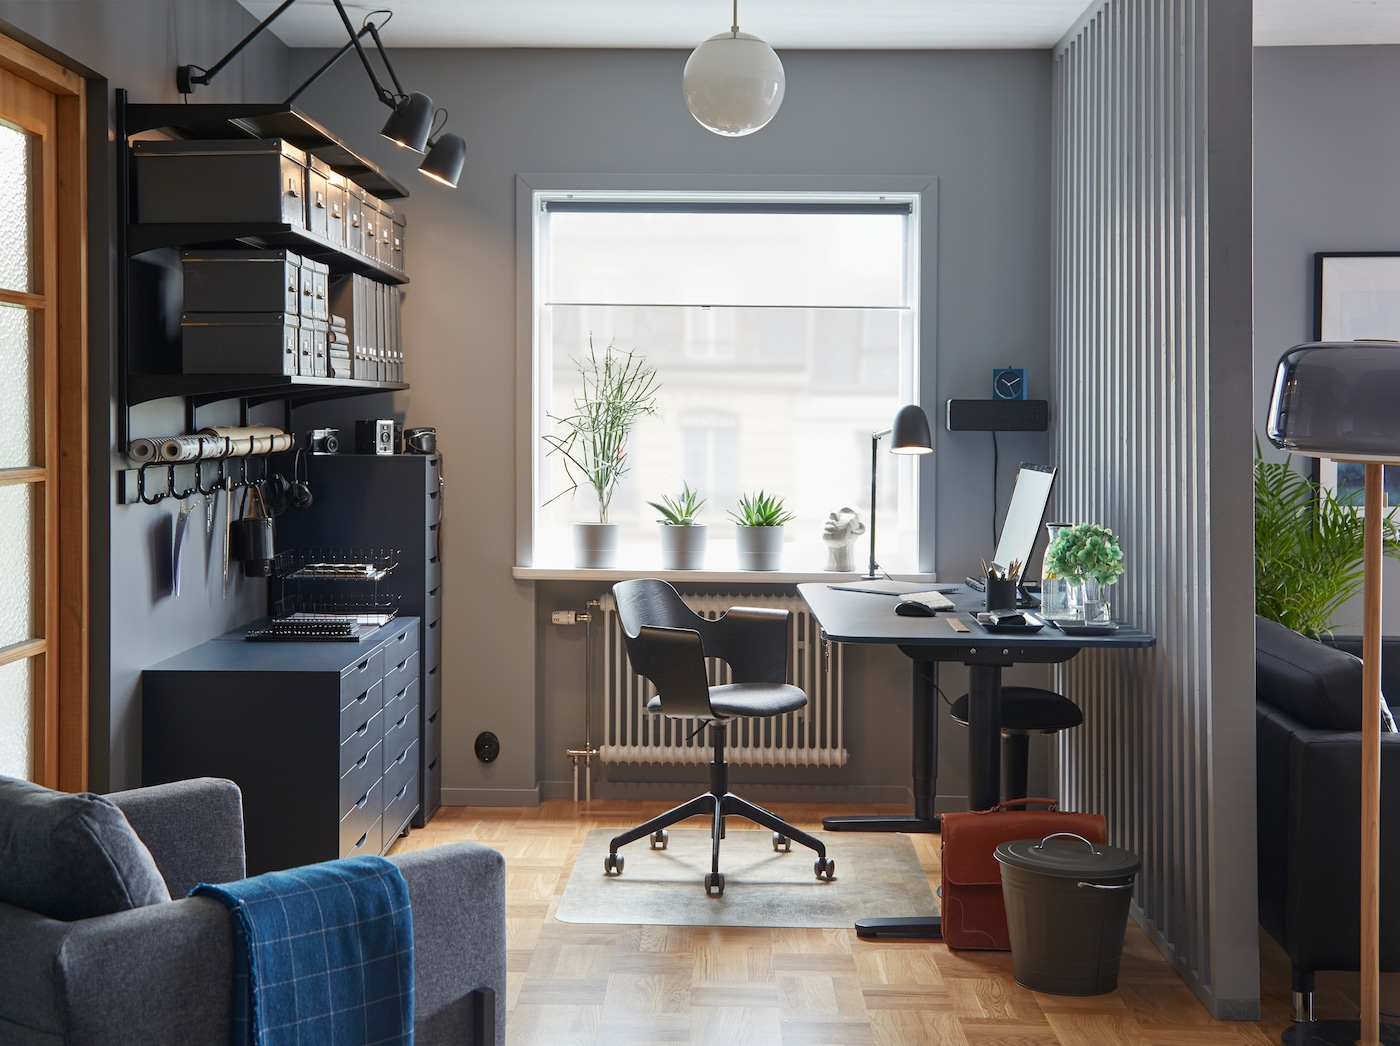 BEKANT linoleum blue/black sit/stand desk in a colour-coordinated home office workspace with conference chair and storage.